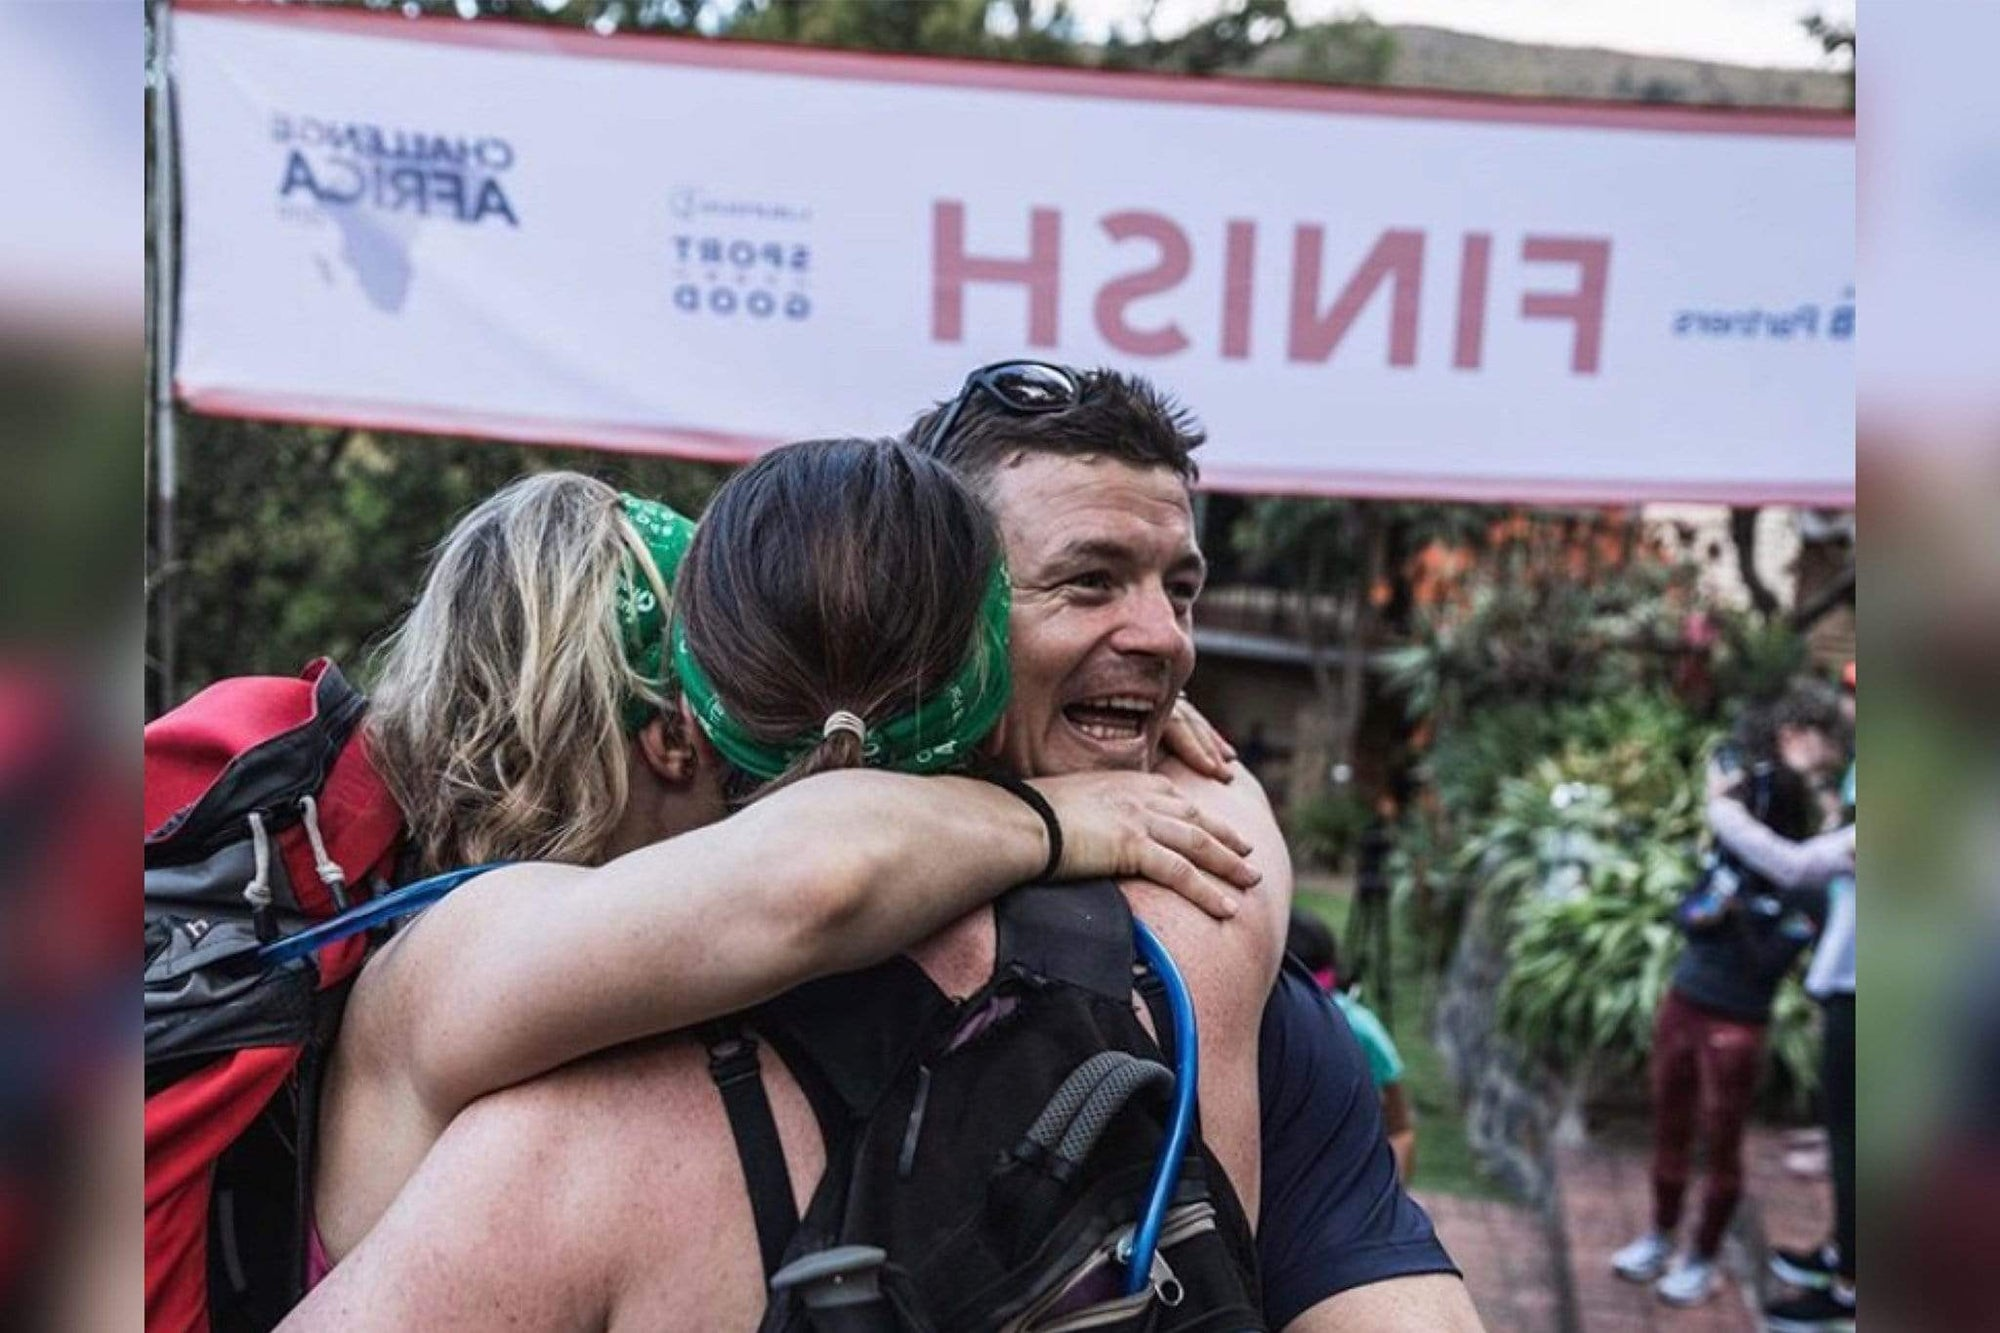 Brian O'Driscoll South Africa Trek Finish Line Photo with Sisters